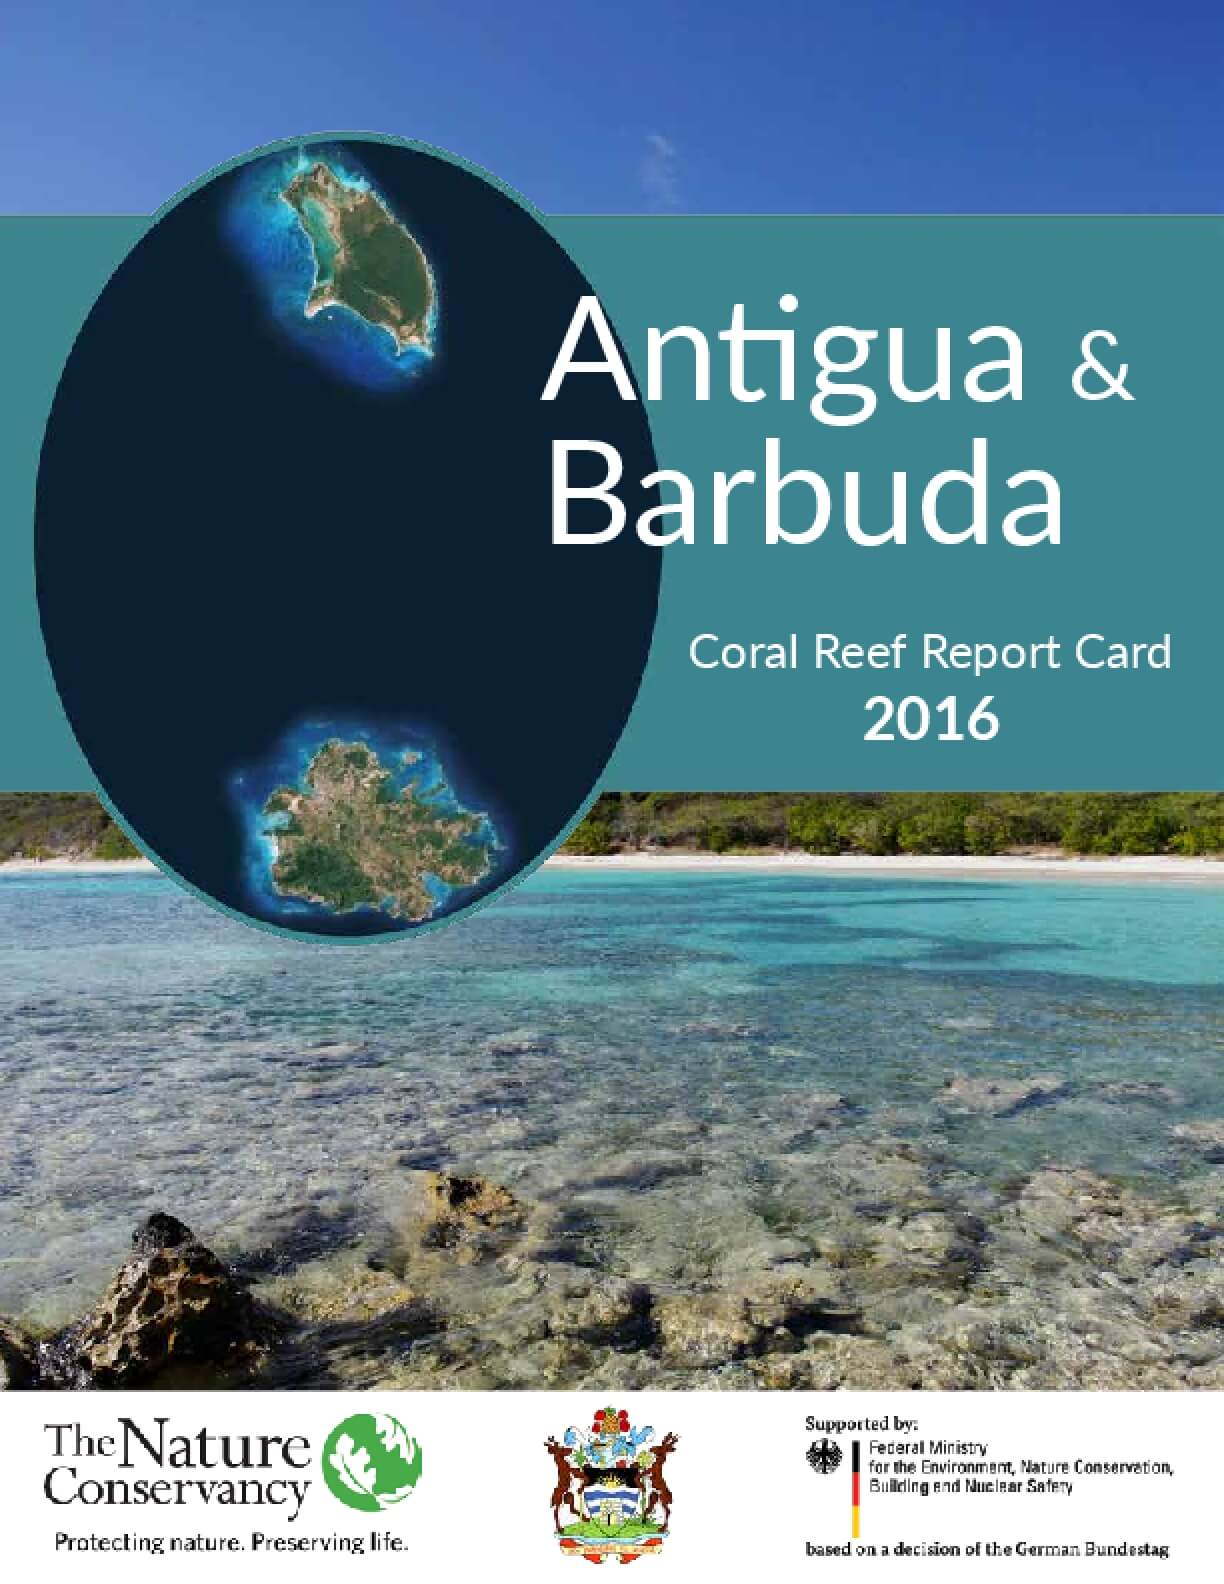 Antigua & Barbuda: Coral Reef Report Card 2016